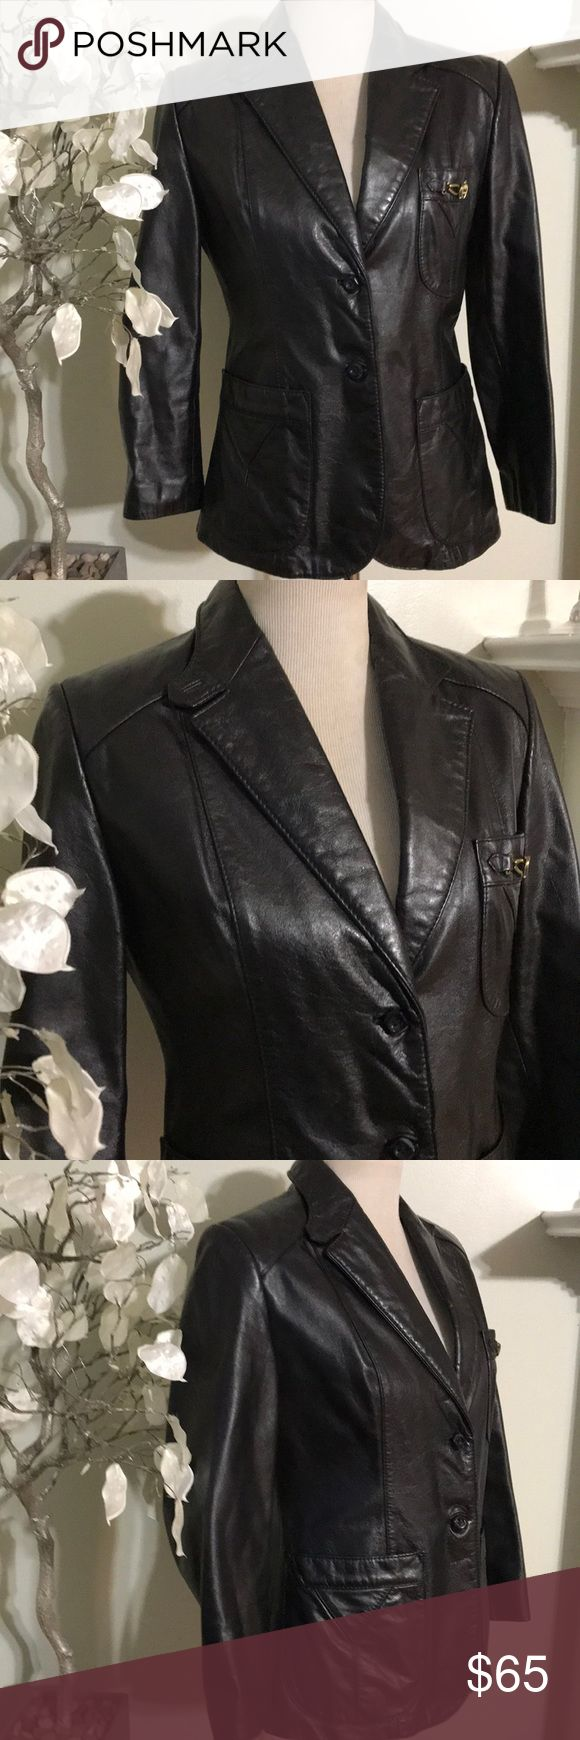 ETIENNE AIGNER LEATHER JACKET Stunning elegant jacket, thick 100% genuine leather, great quality, fully lined Etienne Aigner Jackets & Coats Blazers